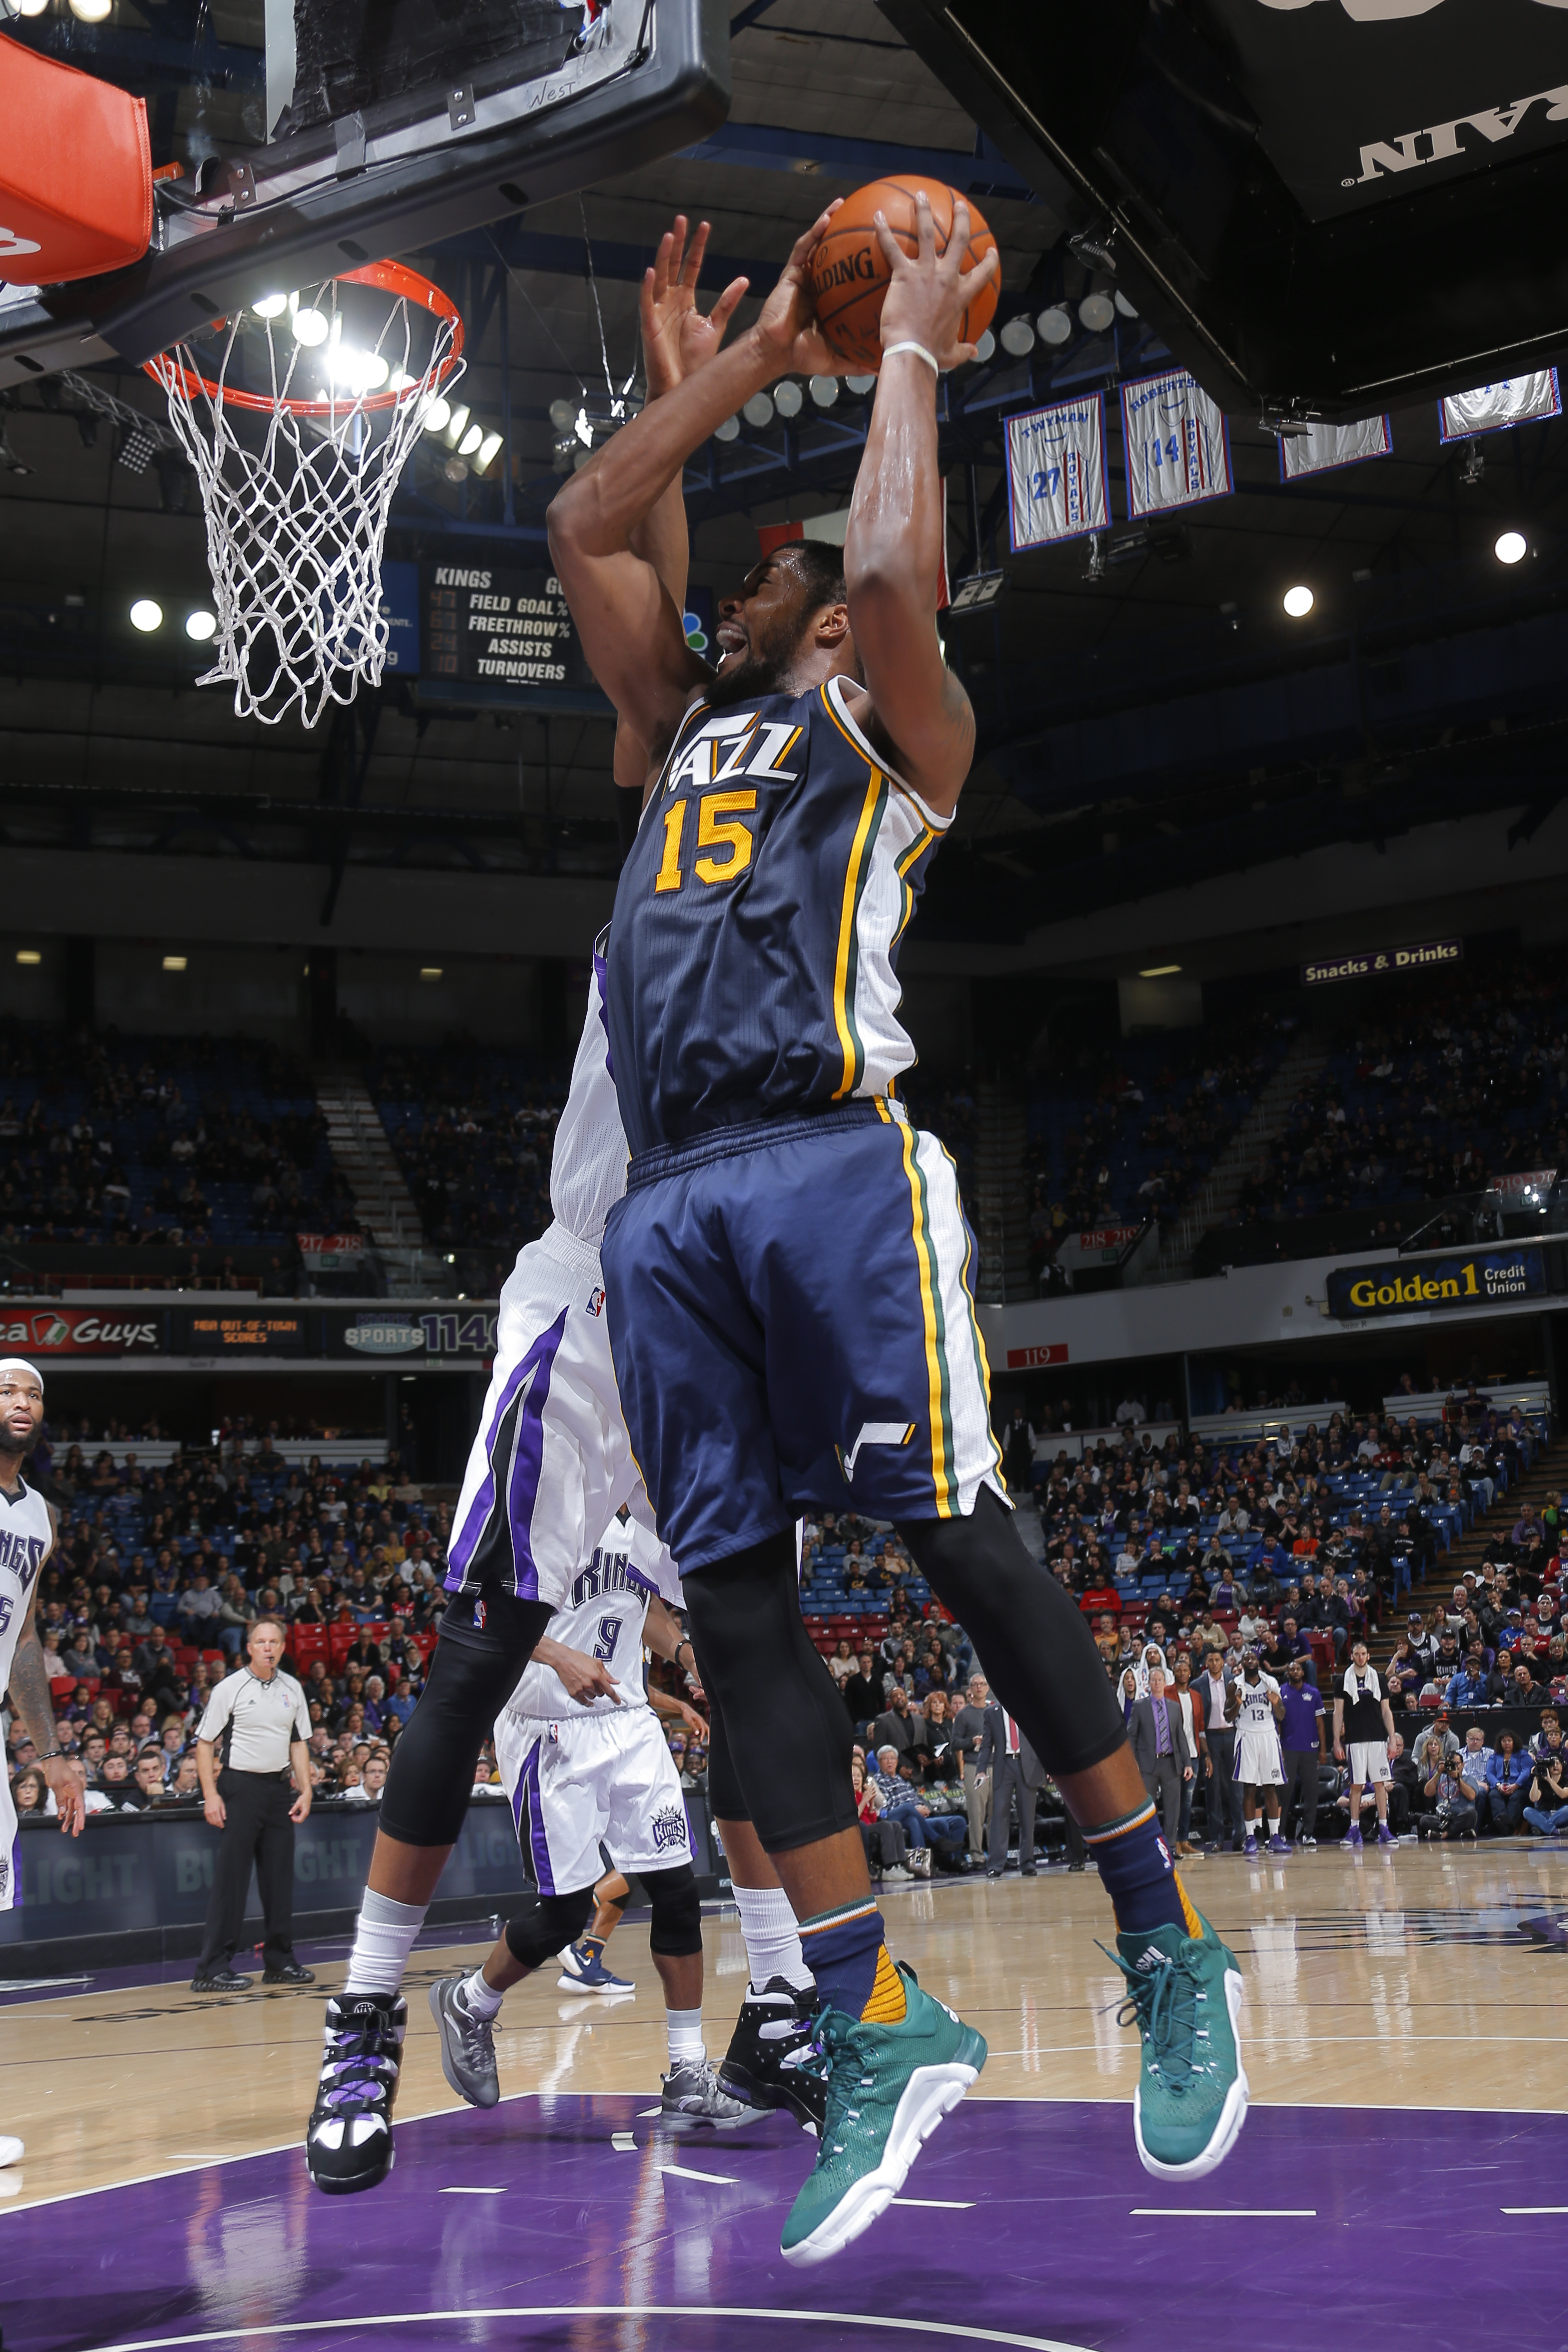 SACRAMENTO, CA - MARCH 13:  Derrick Favors #15 of the Utah Jazz goes to the basket against the Sacramento Kings on March 13, 2016 at Sleep Train Arena in Sacramento, California. (Photo by Rocky Widner/NBAE via Getty Images)